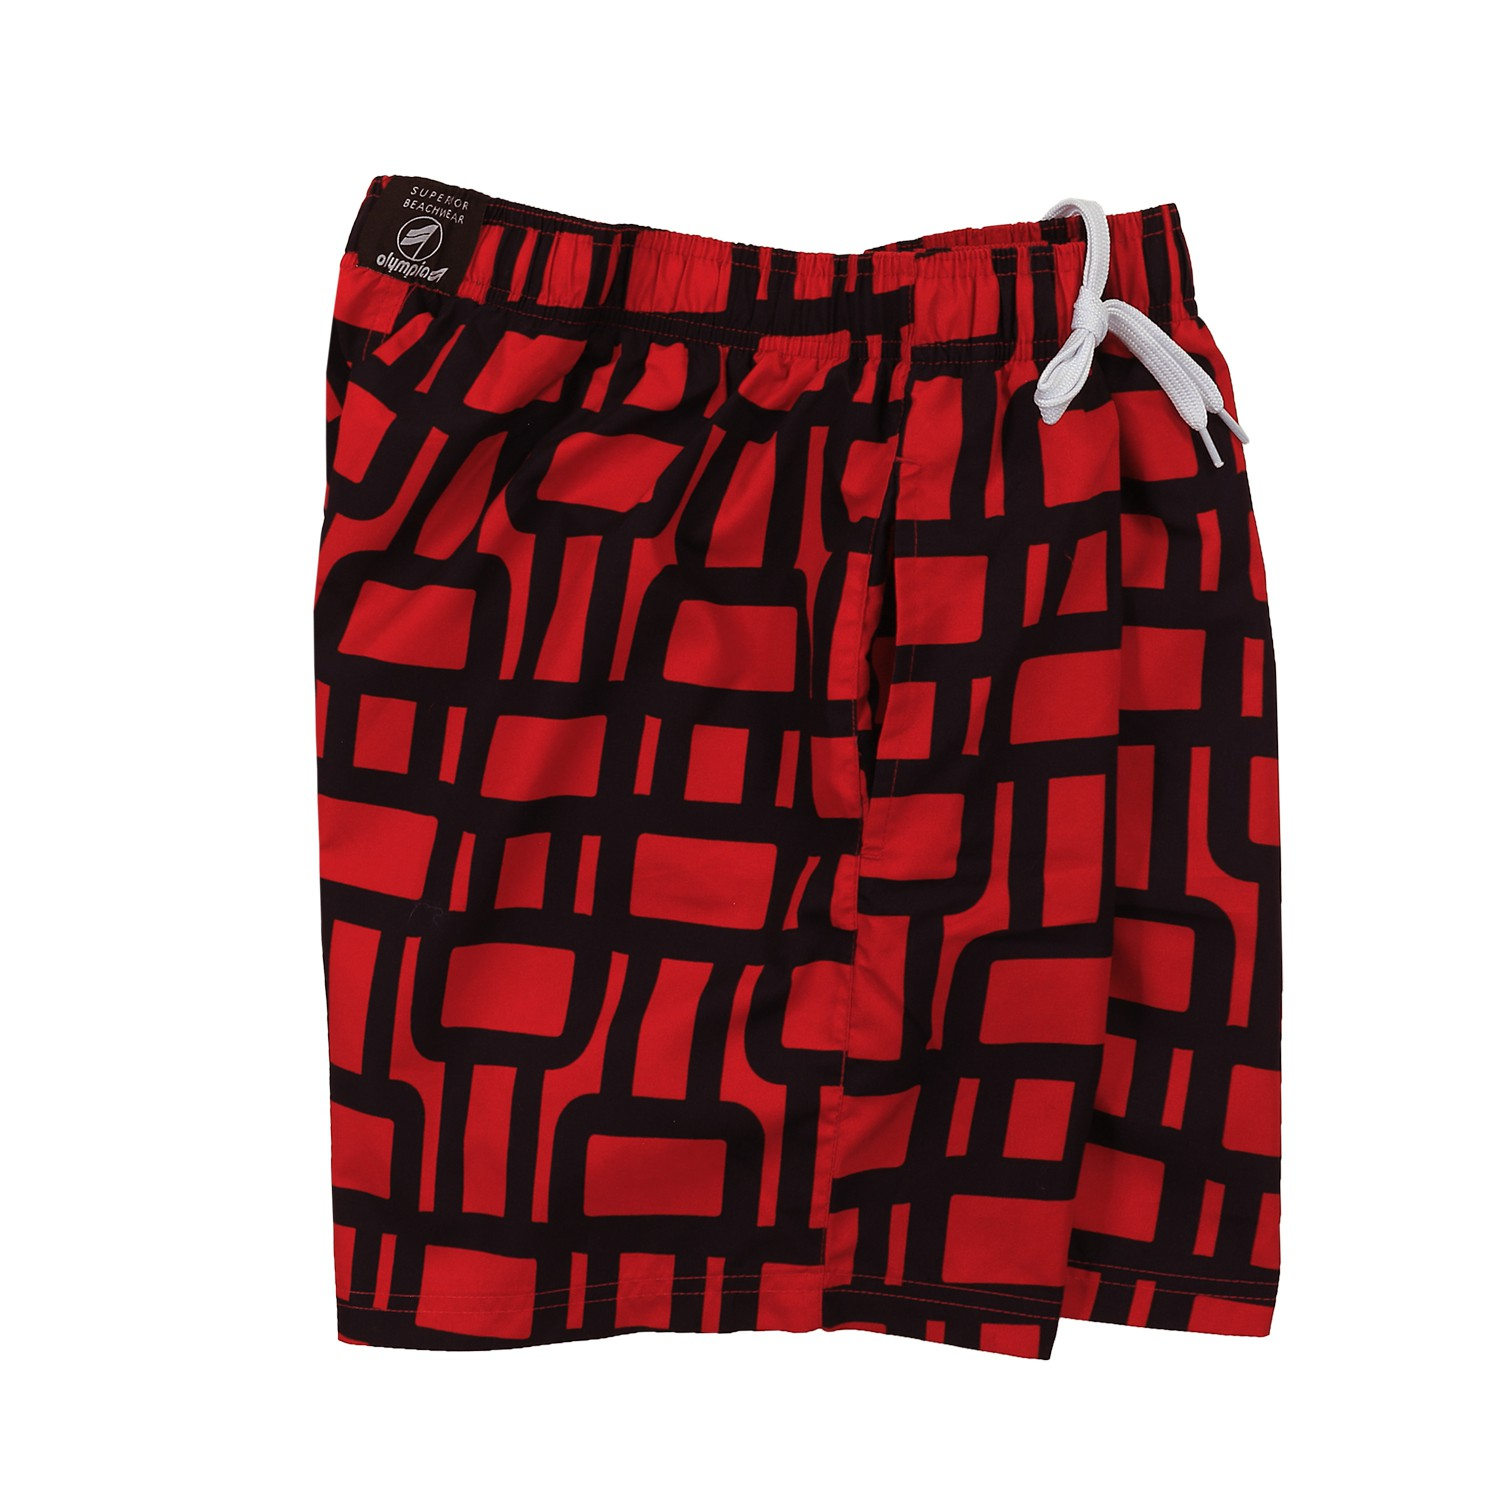 Detail Image to Swimming Trunks by Olympia, blue/ red, in plus size up to 8XL